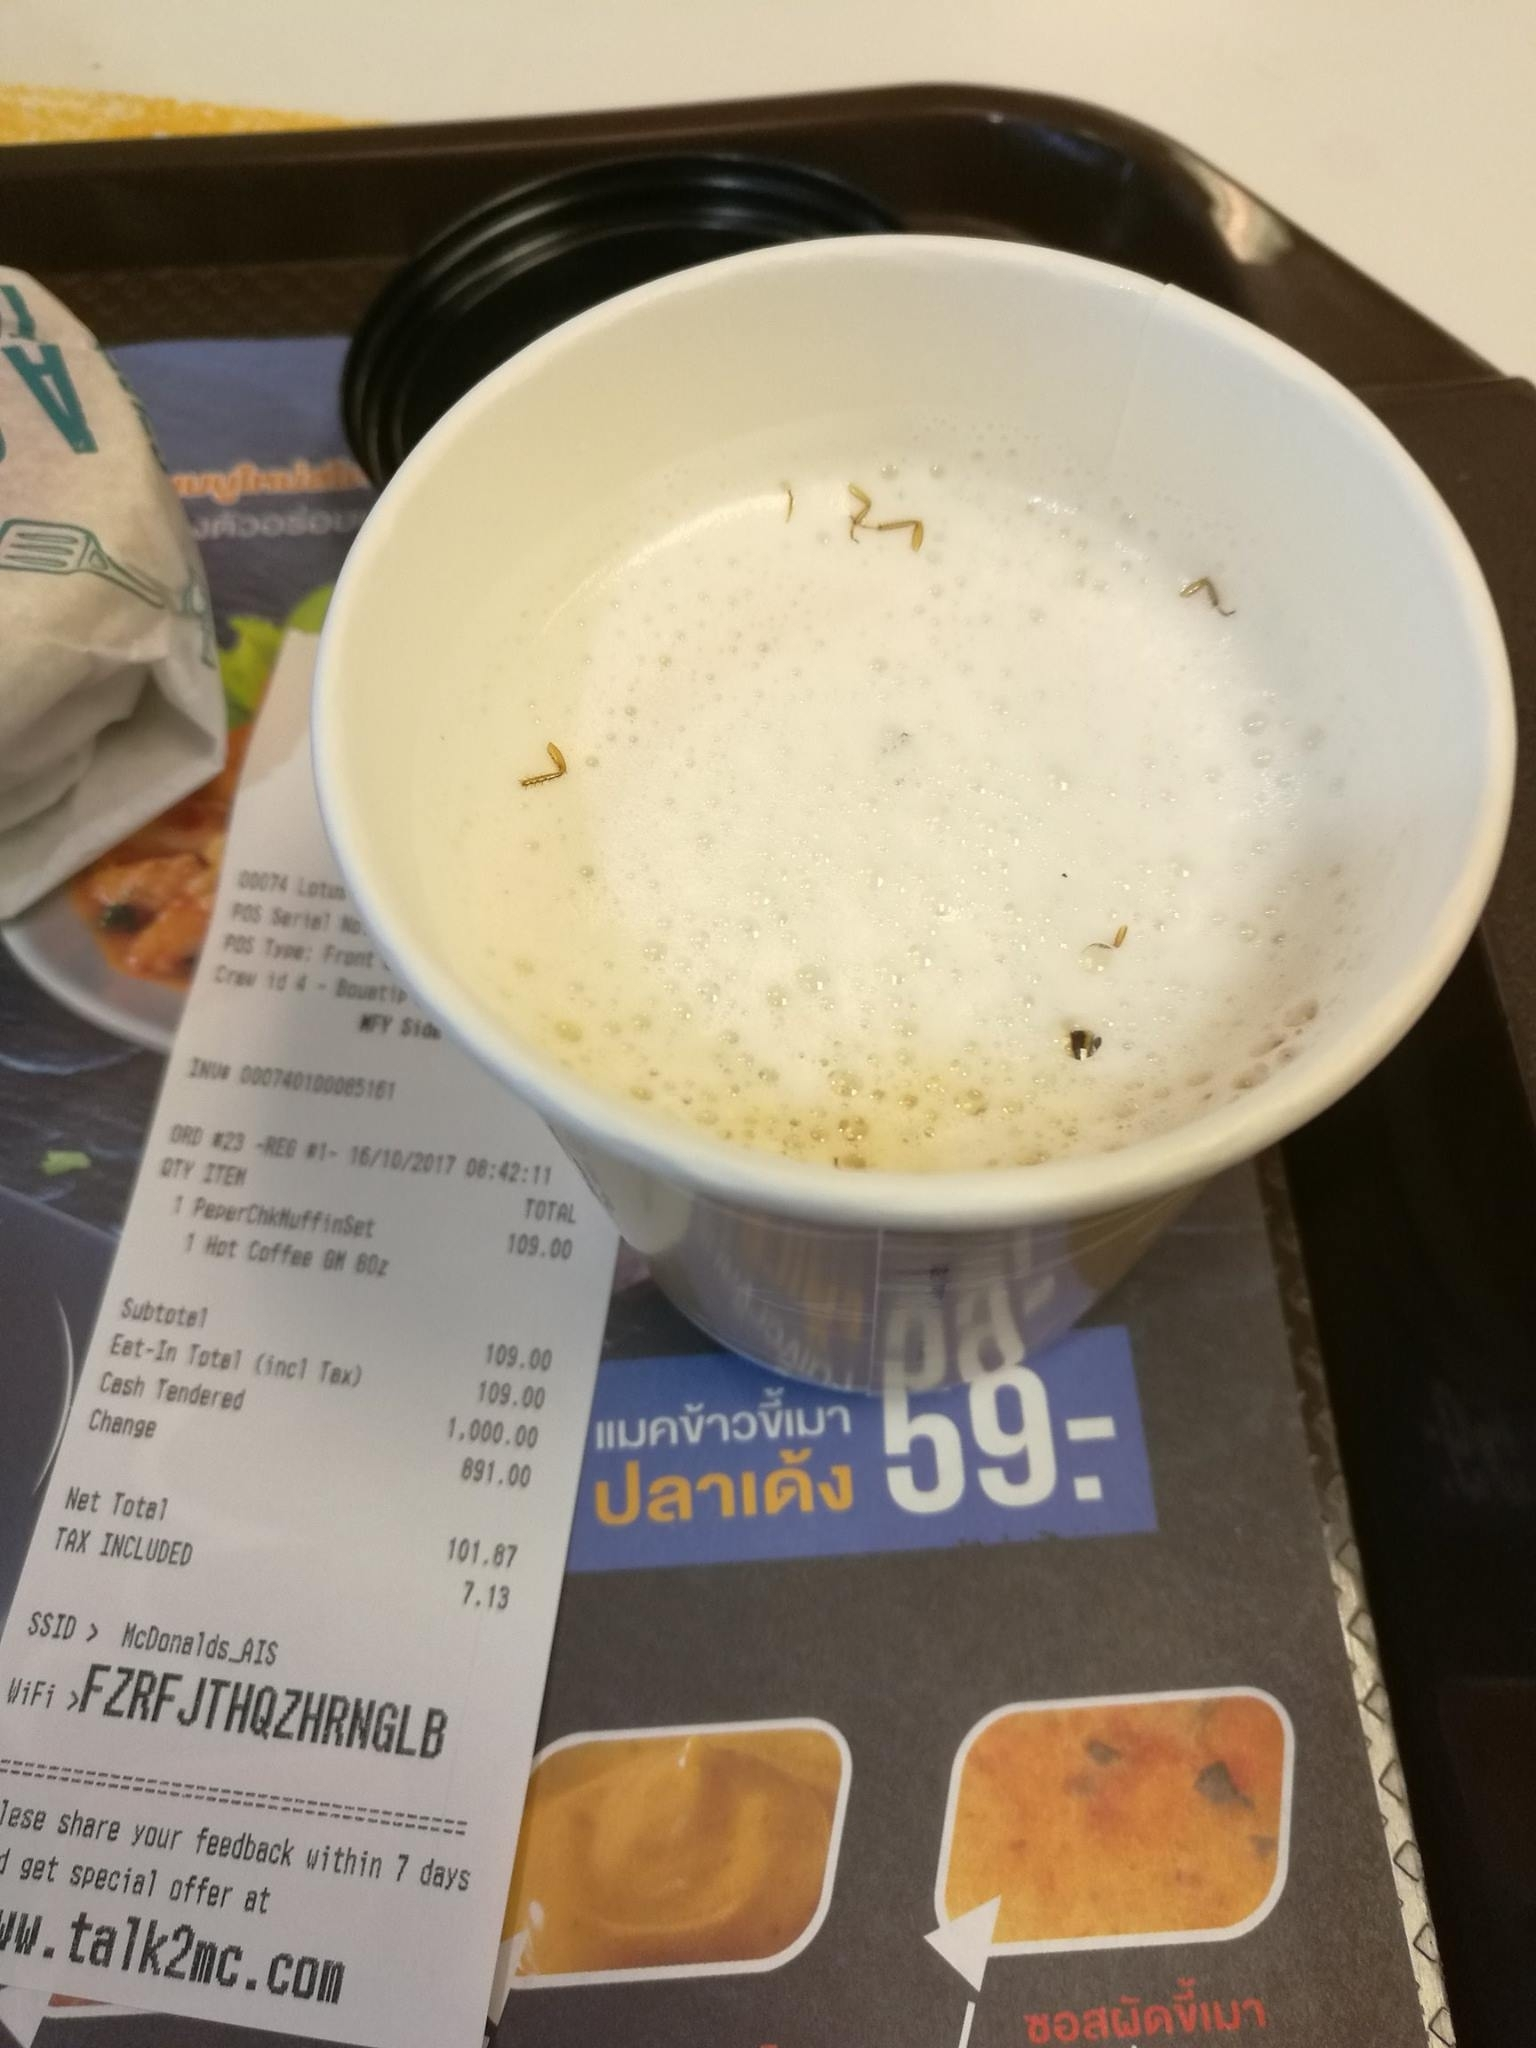 Cockroach coffee found in McDonalds coffee